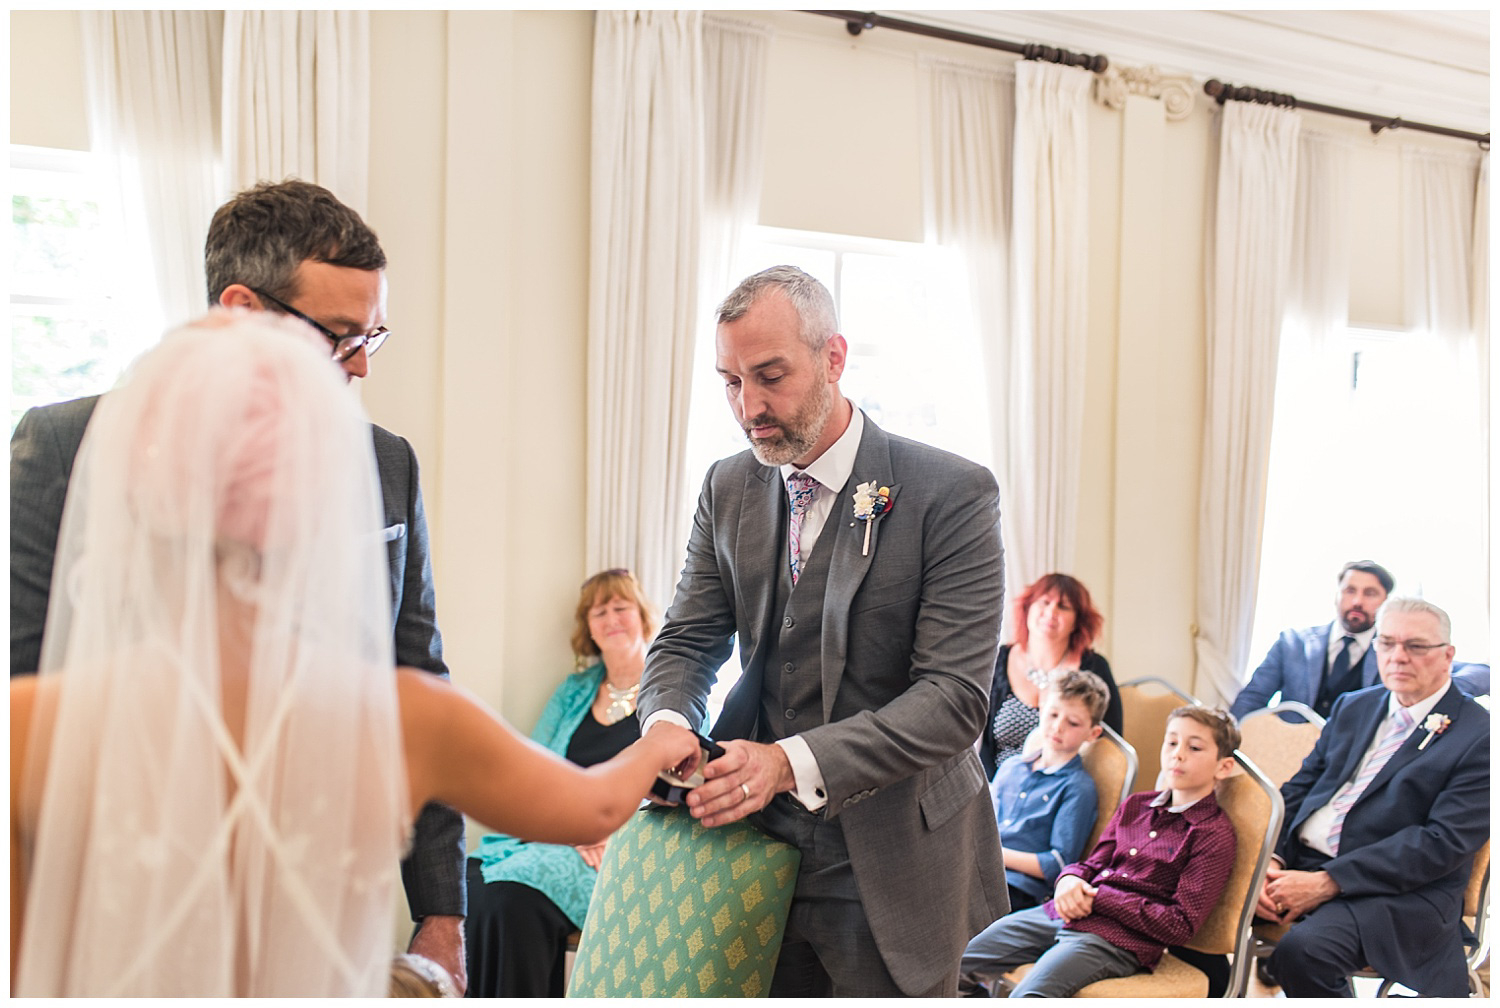 Bride and groom during wedding ceremony at York House Richmond